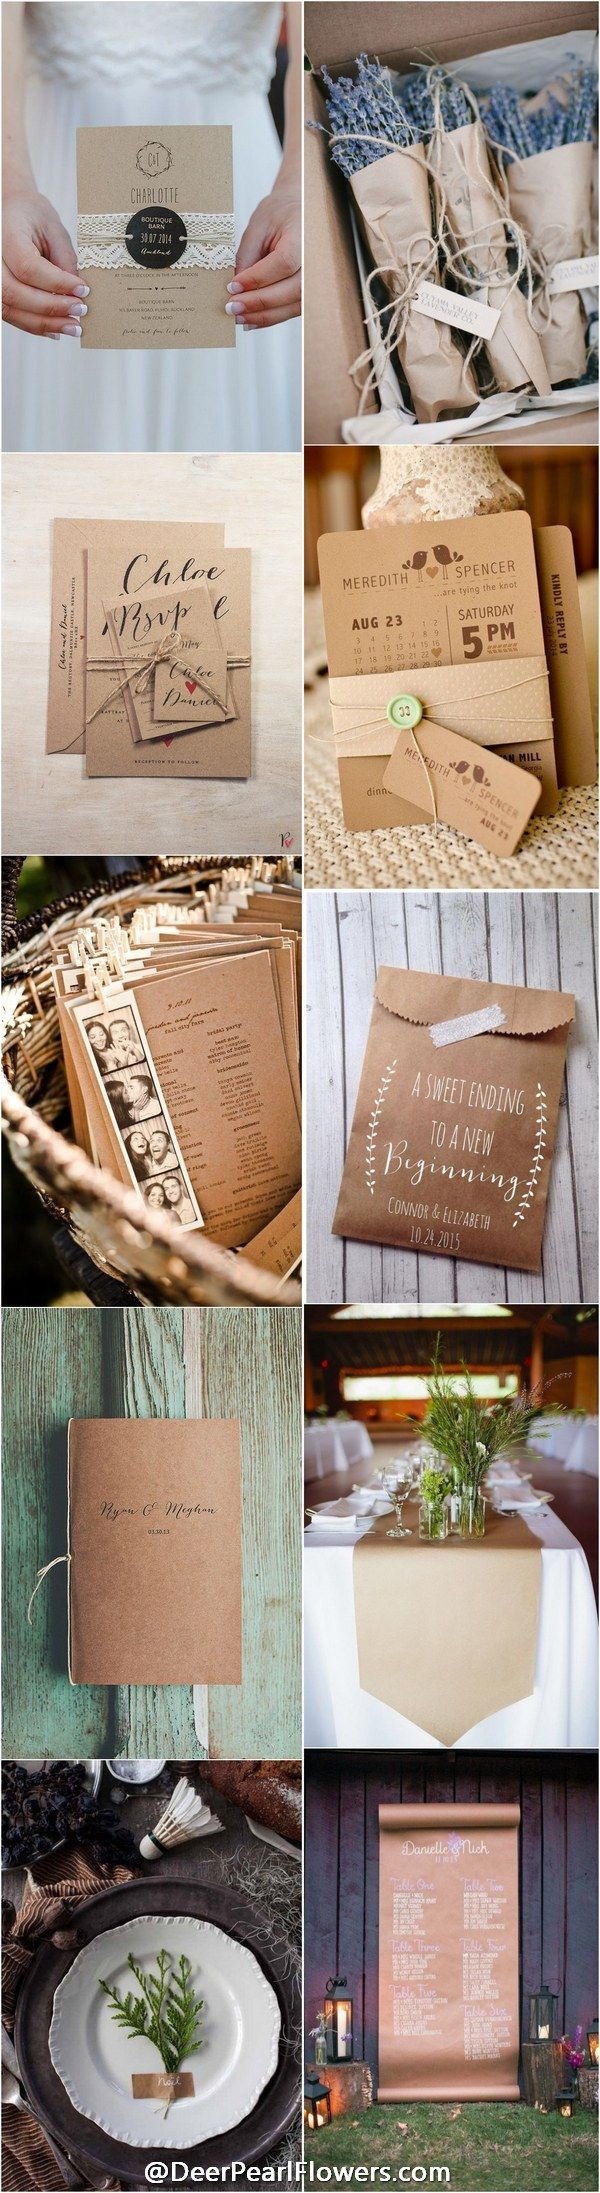 rustic country wedding ideas- kraft paper wedding theme details / http://www.deerpearlflowers.com/rustic-country-kraft-paper-wedding-ideas/